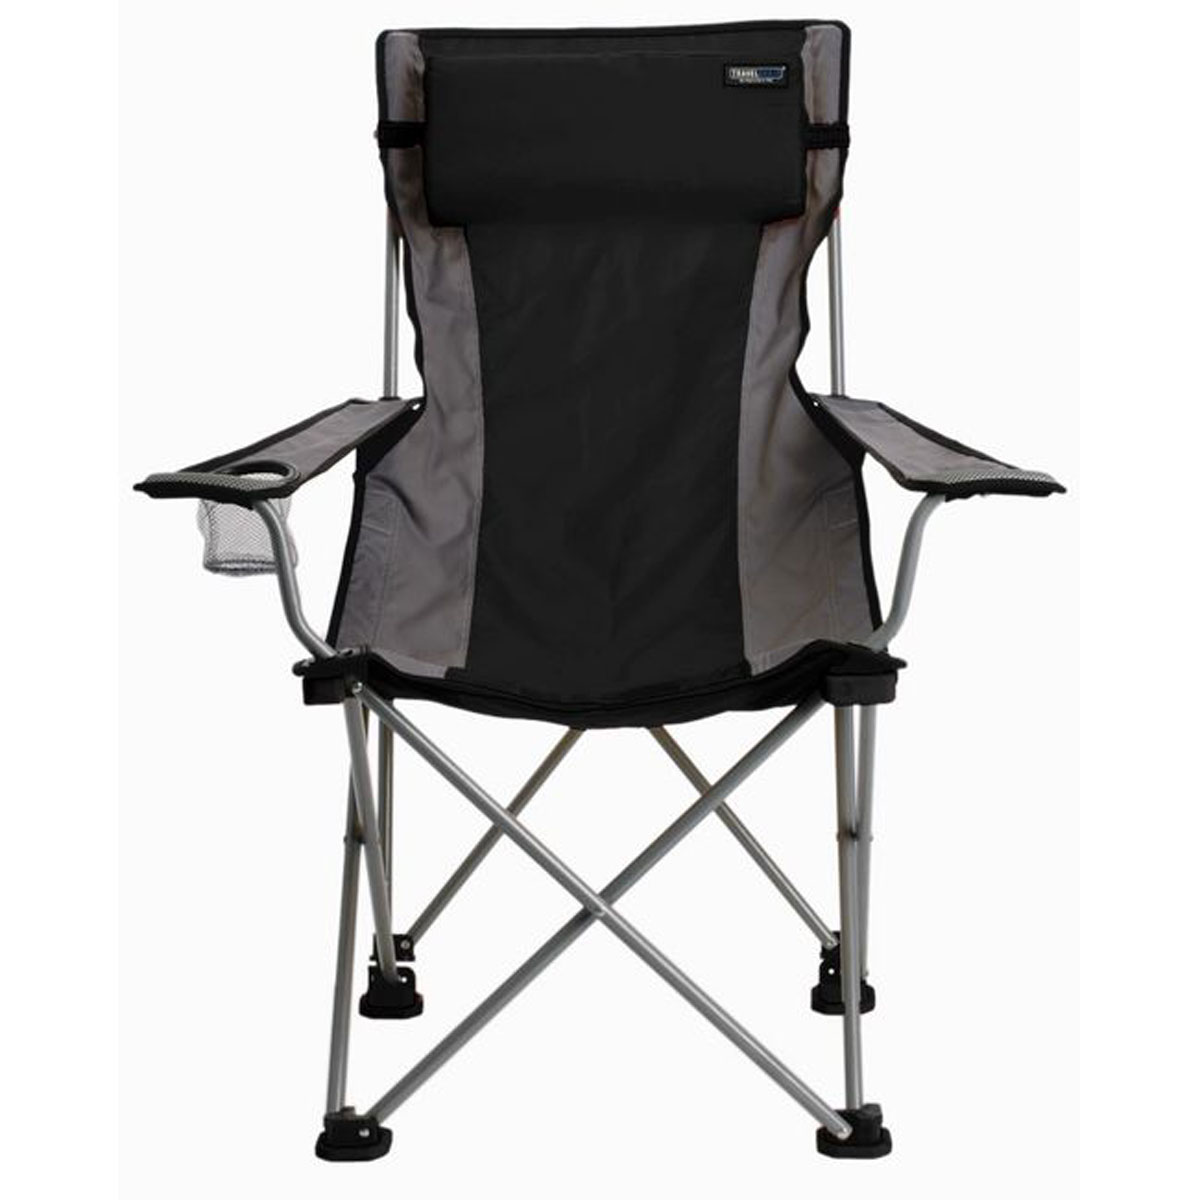 Lightweight Folding Beach Lounge Chair Camping Chairs Lightweight Portable Chairs